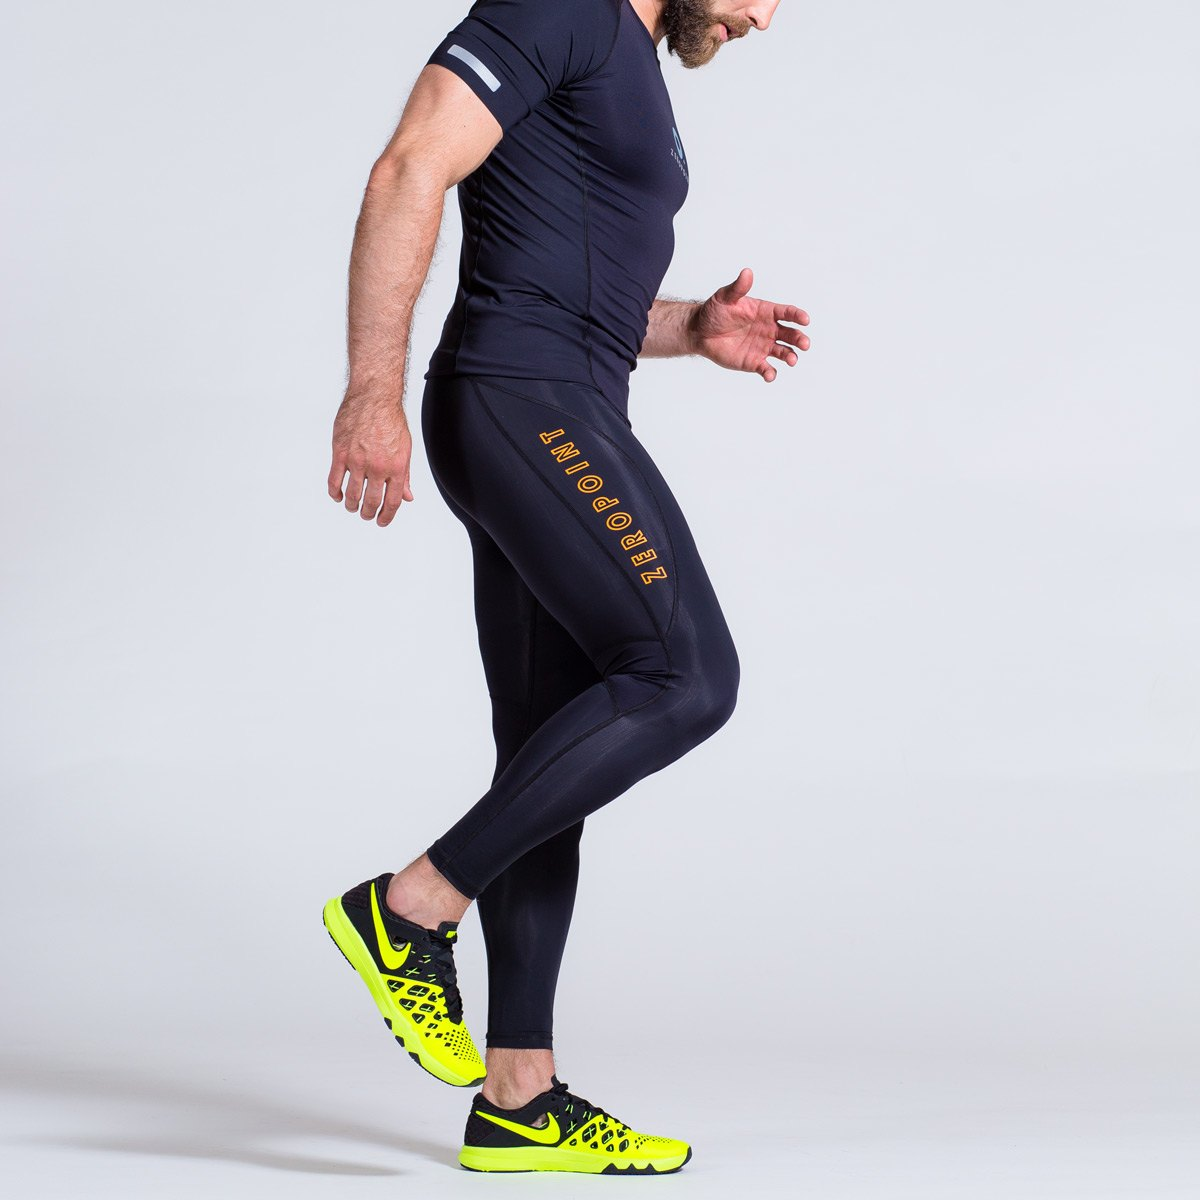 c32d14269ce Shop Renewed Athletic Compression Tights